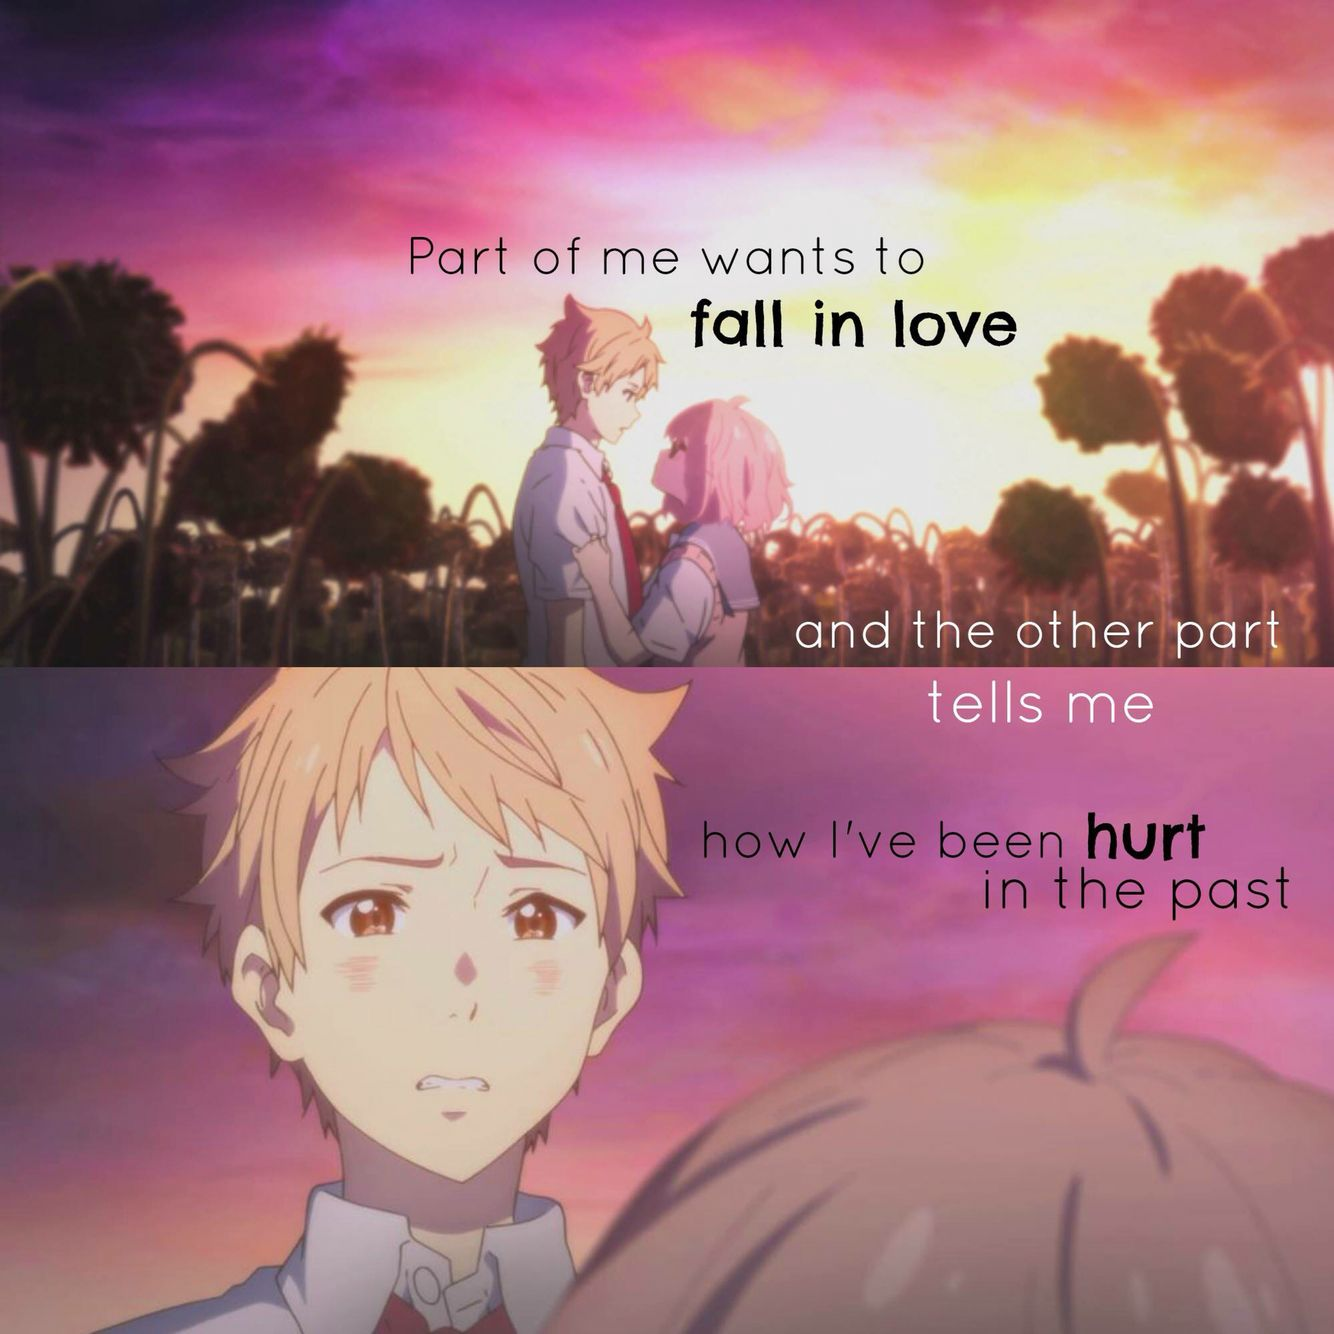 Anime Quotes About Friendship Anime  Beyond The Horizon  Anime Quotes  Pinterest  Anime